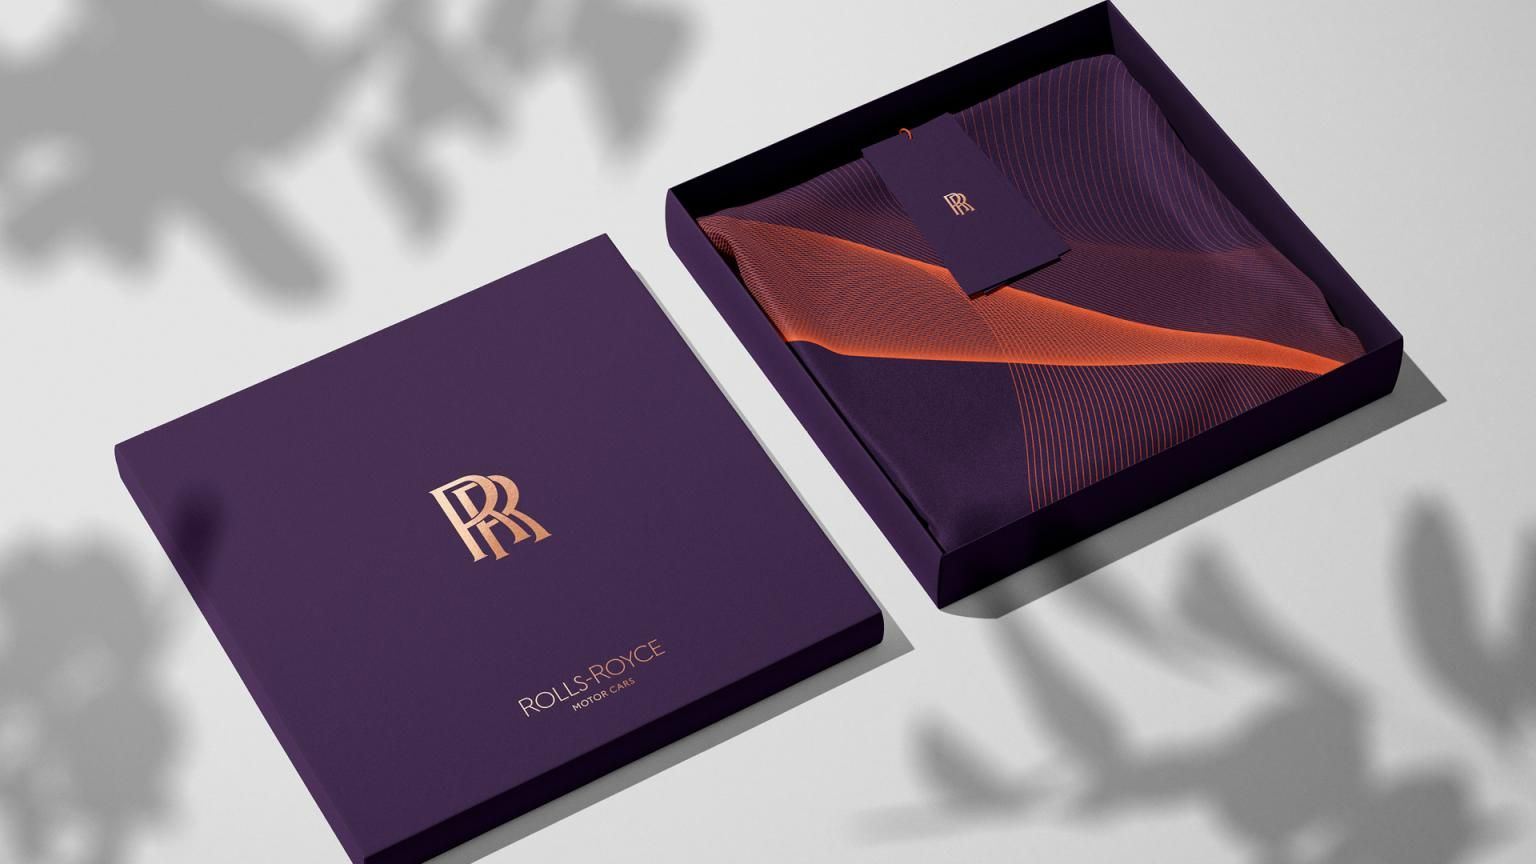 Rolls-Royce Has Officially Unveiled A New Logo And Brand Identity